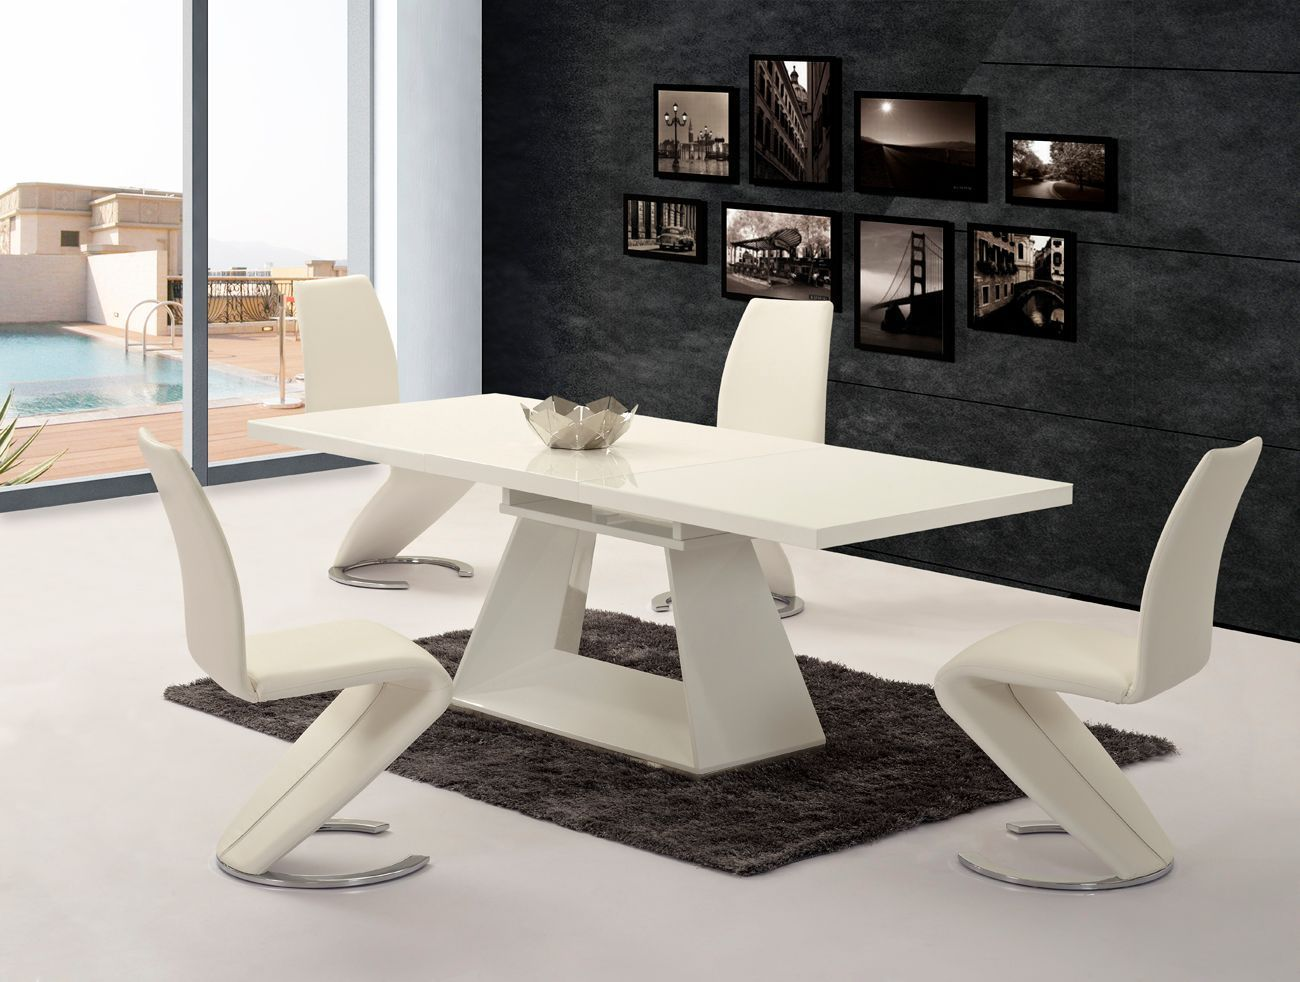 kitchen table and chair set stools walmart white extending high gloss dining & 6 z chairs ...